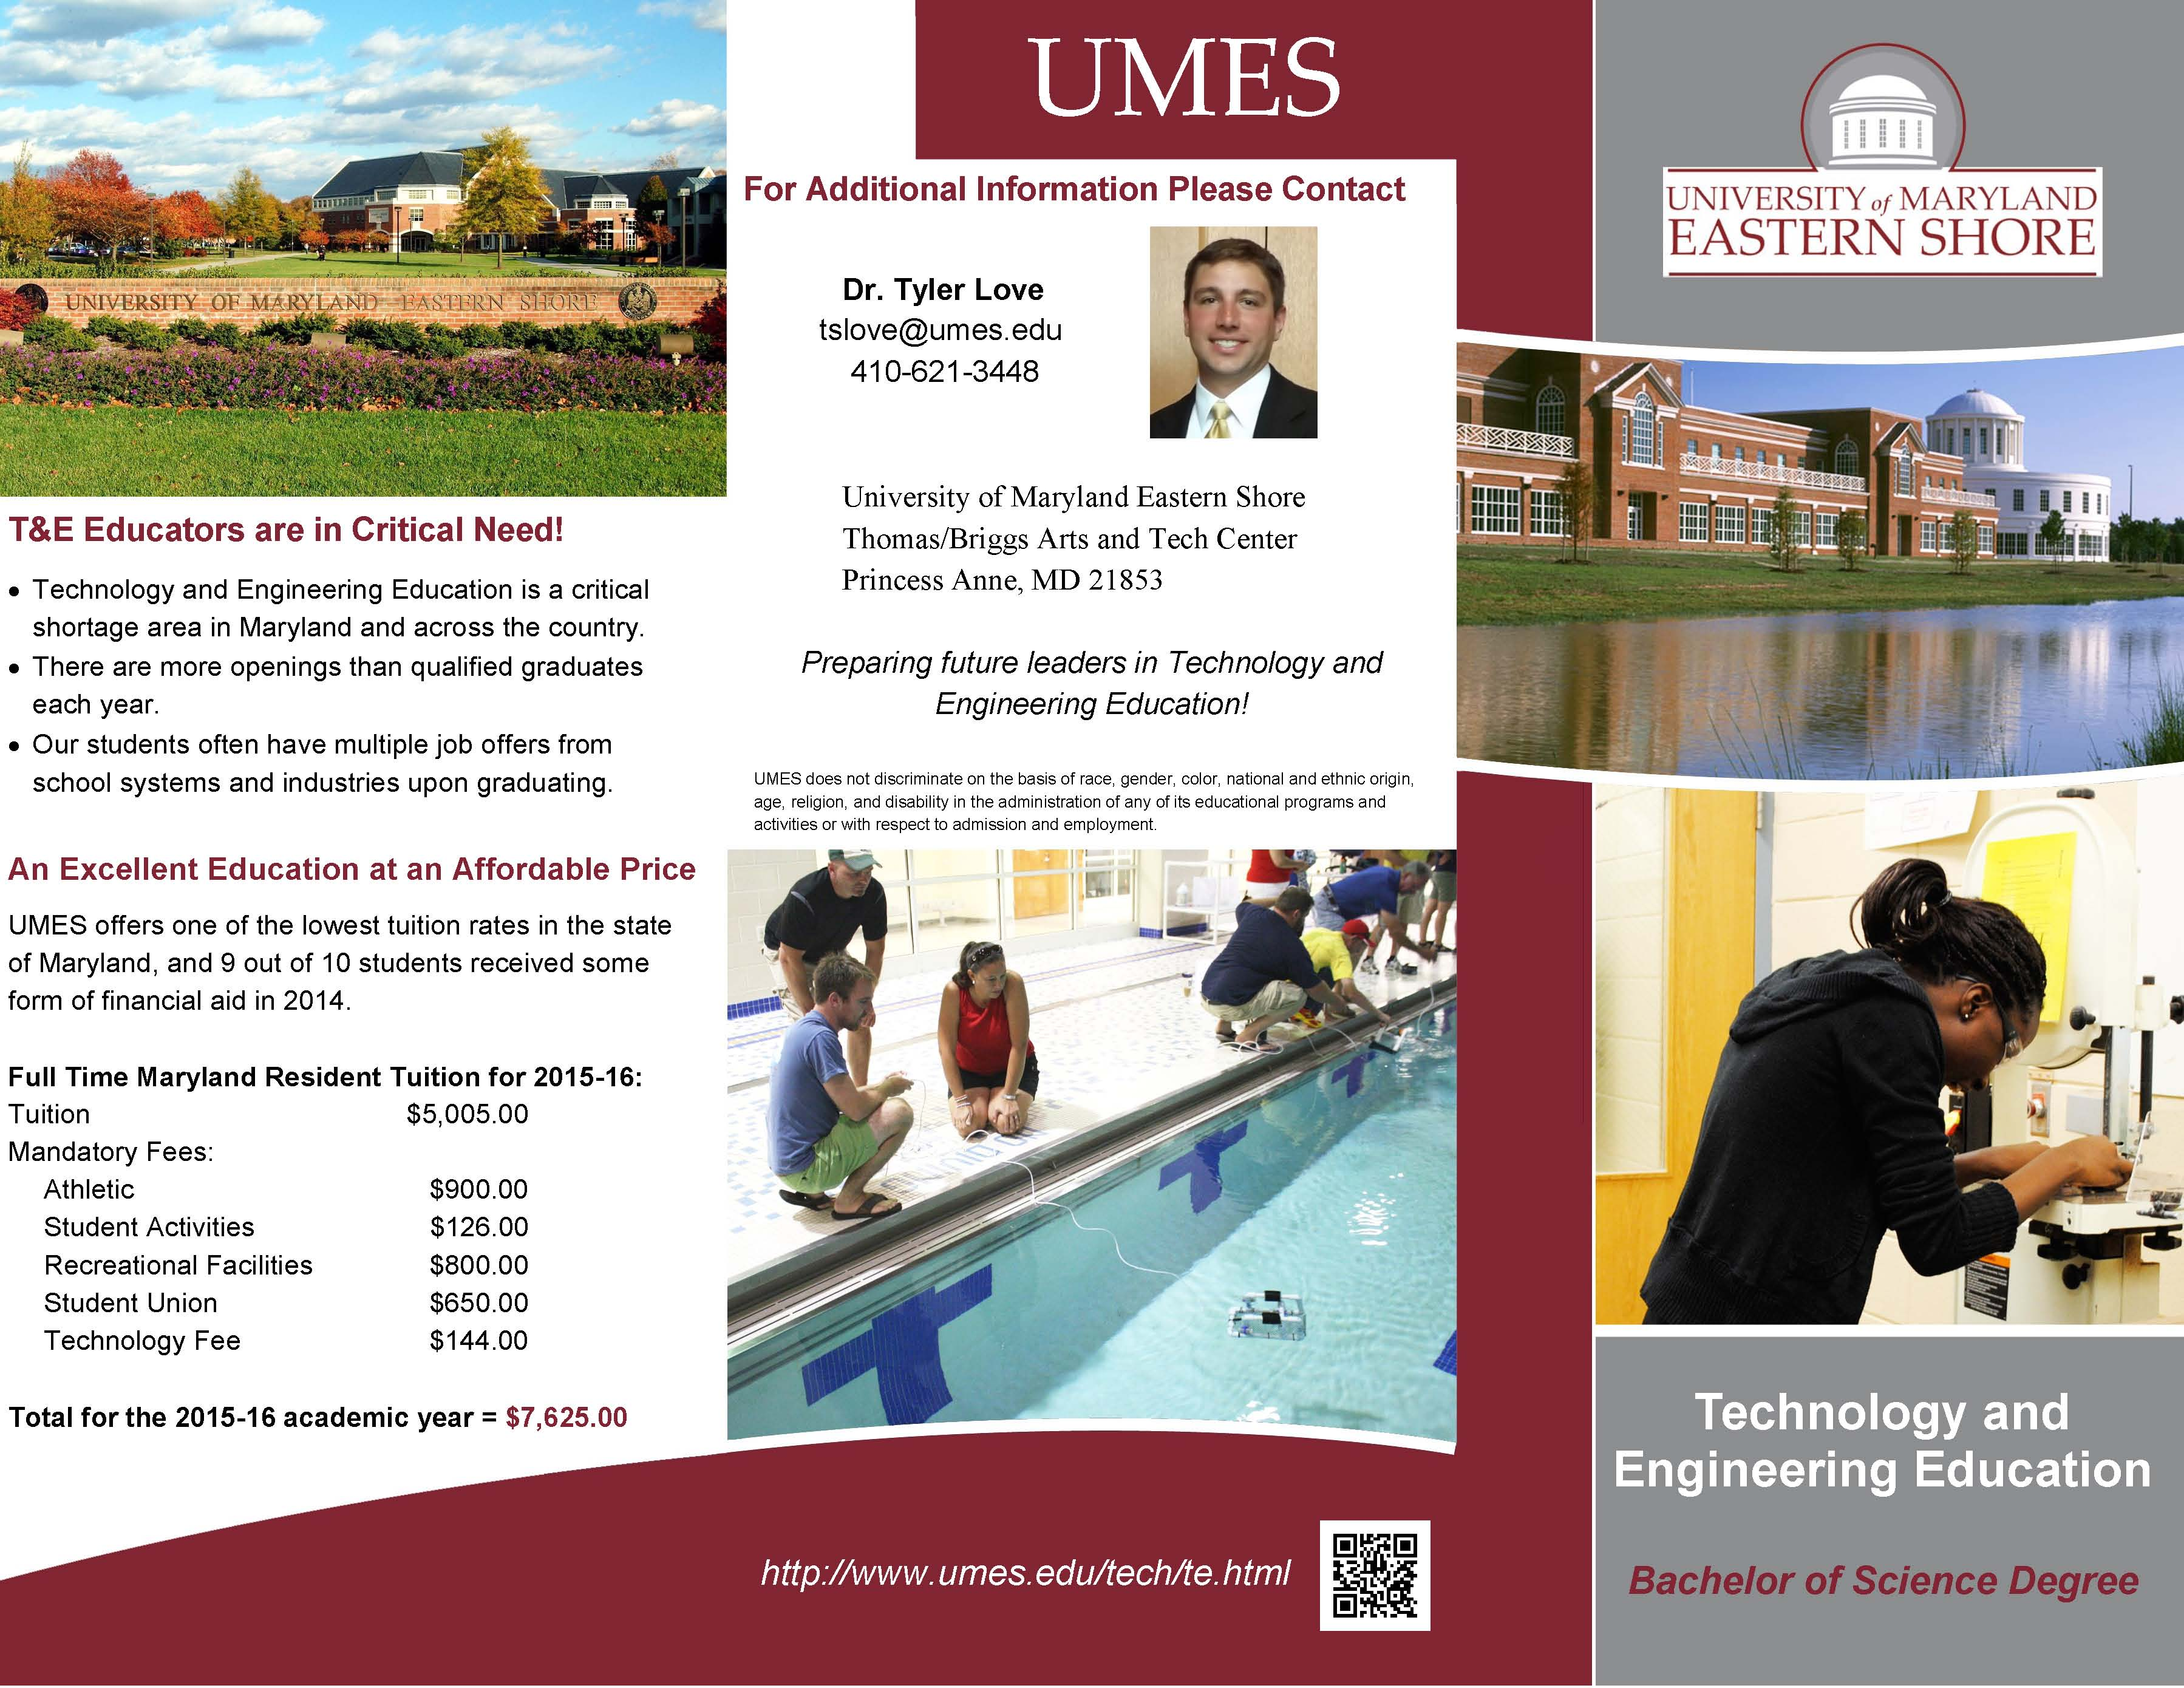 larger image of Technology and Engineering Education brochure